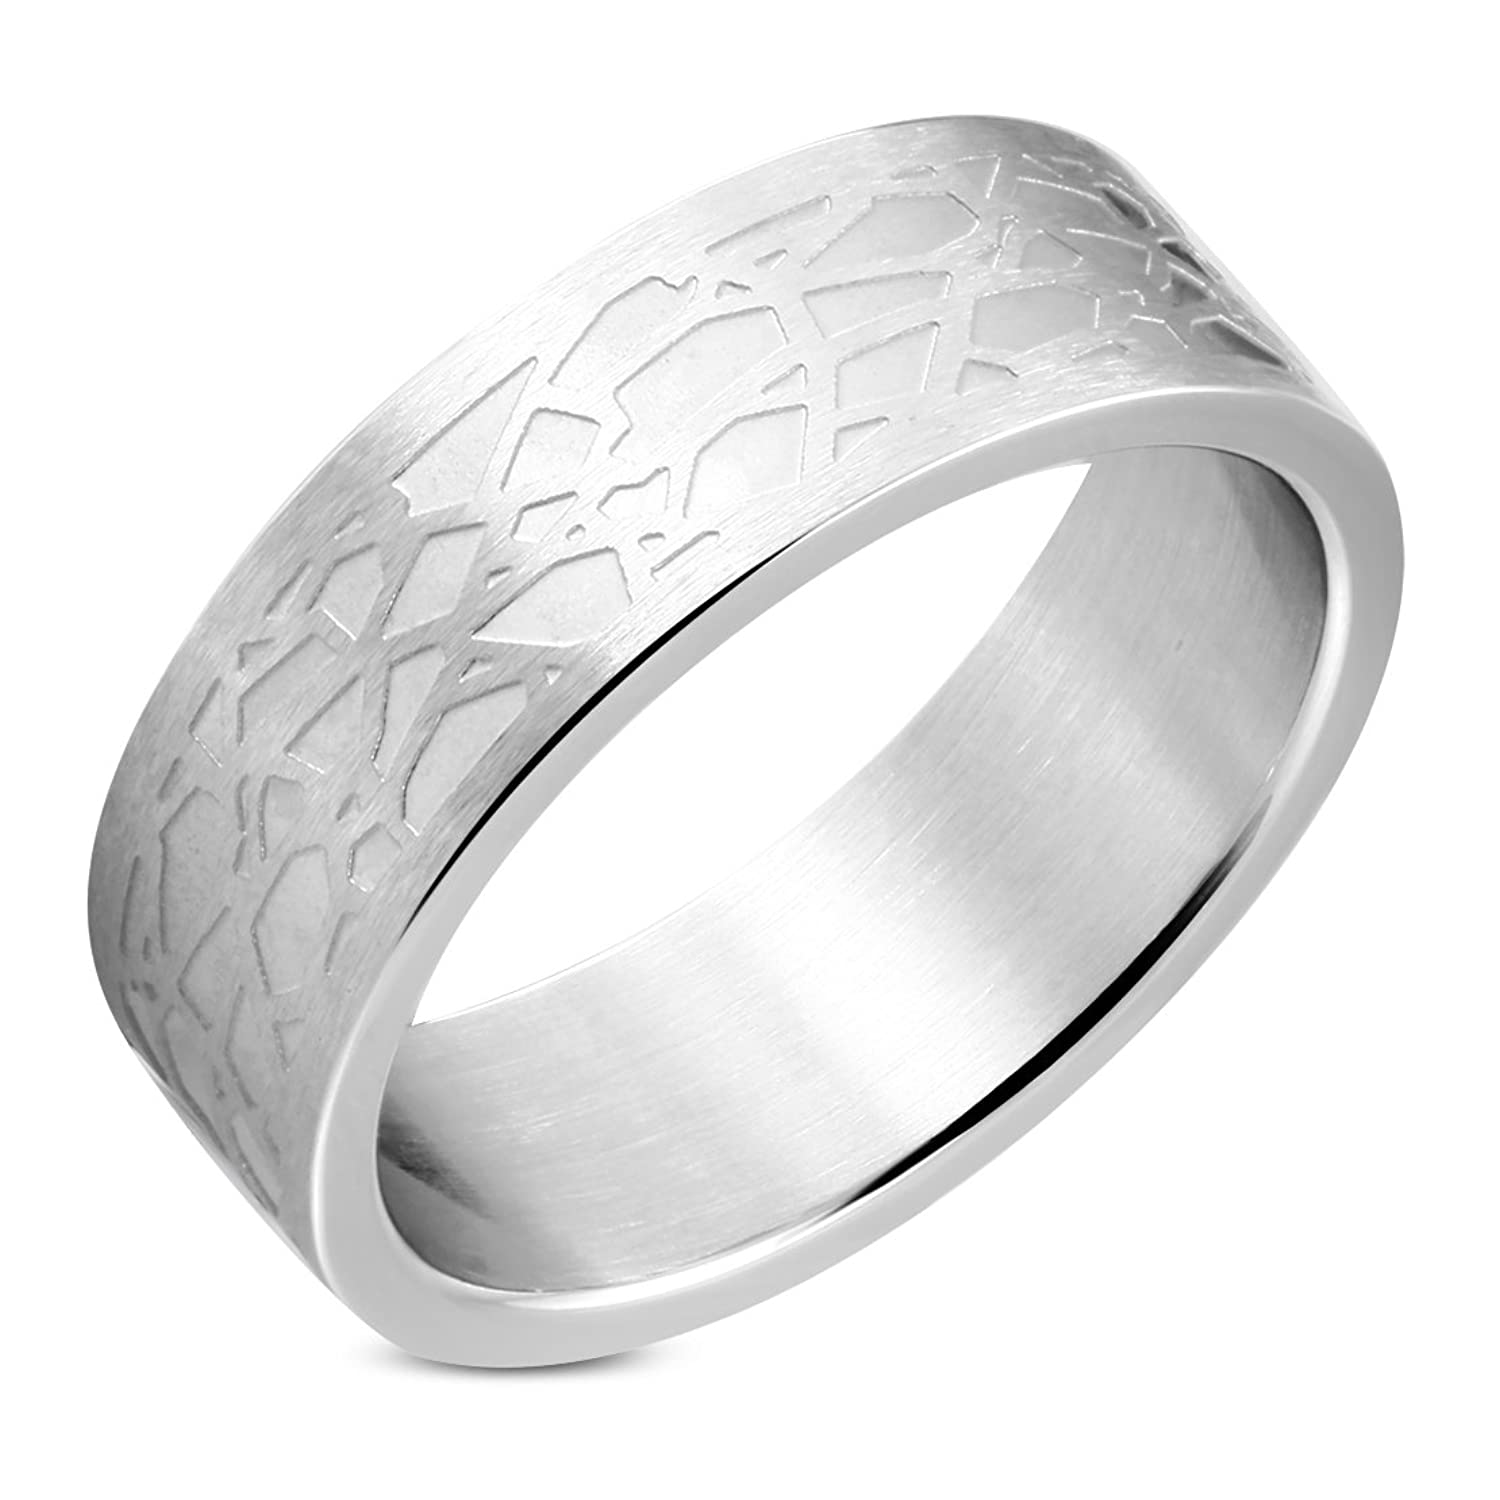 Stainless Steel Matte Finished Stone-Style Flat Band Ring